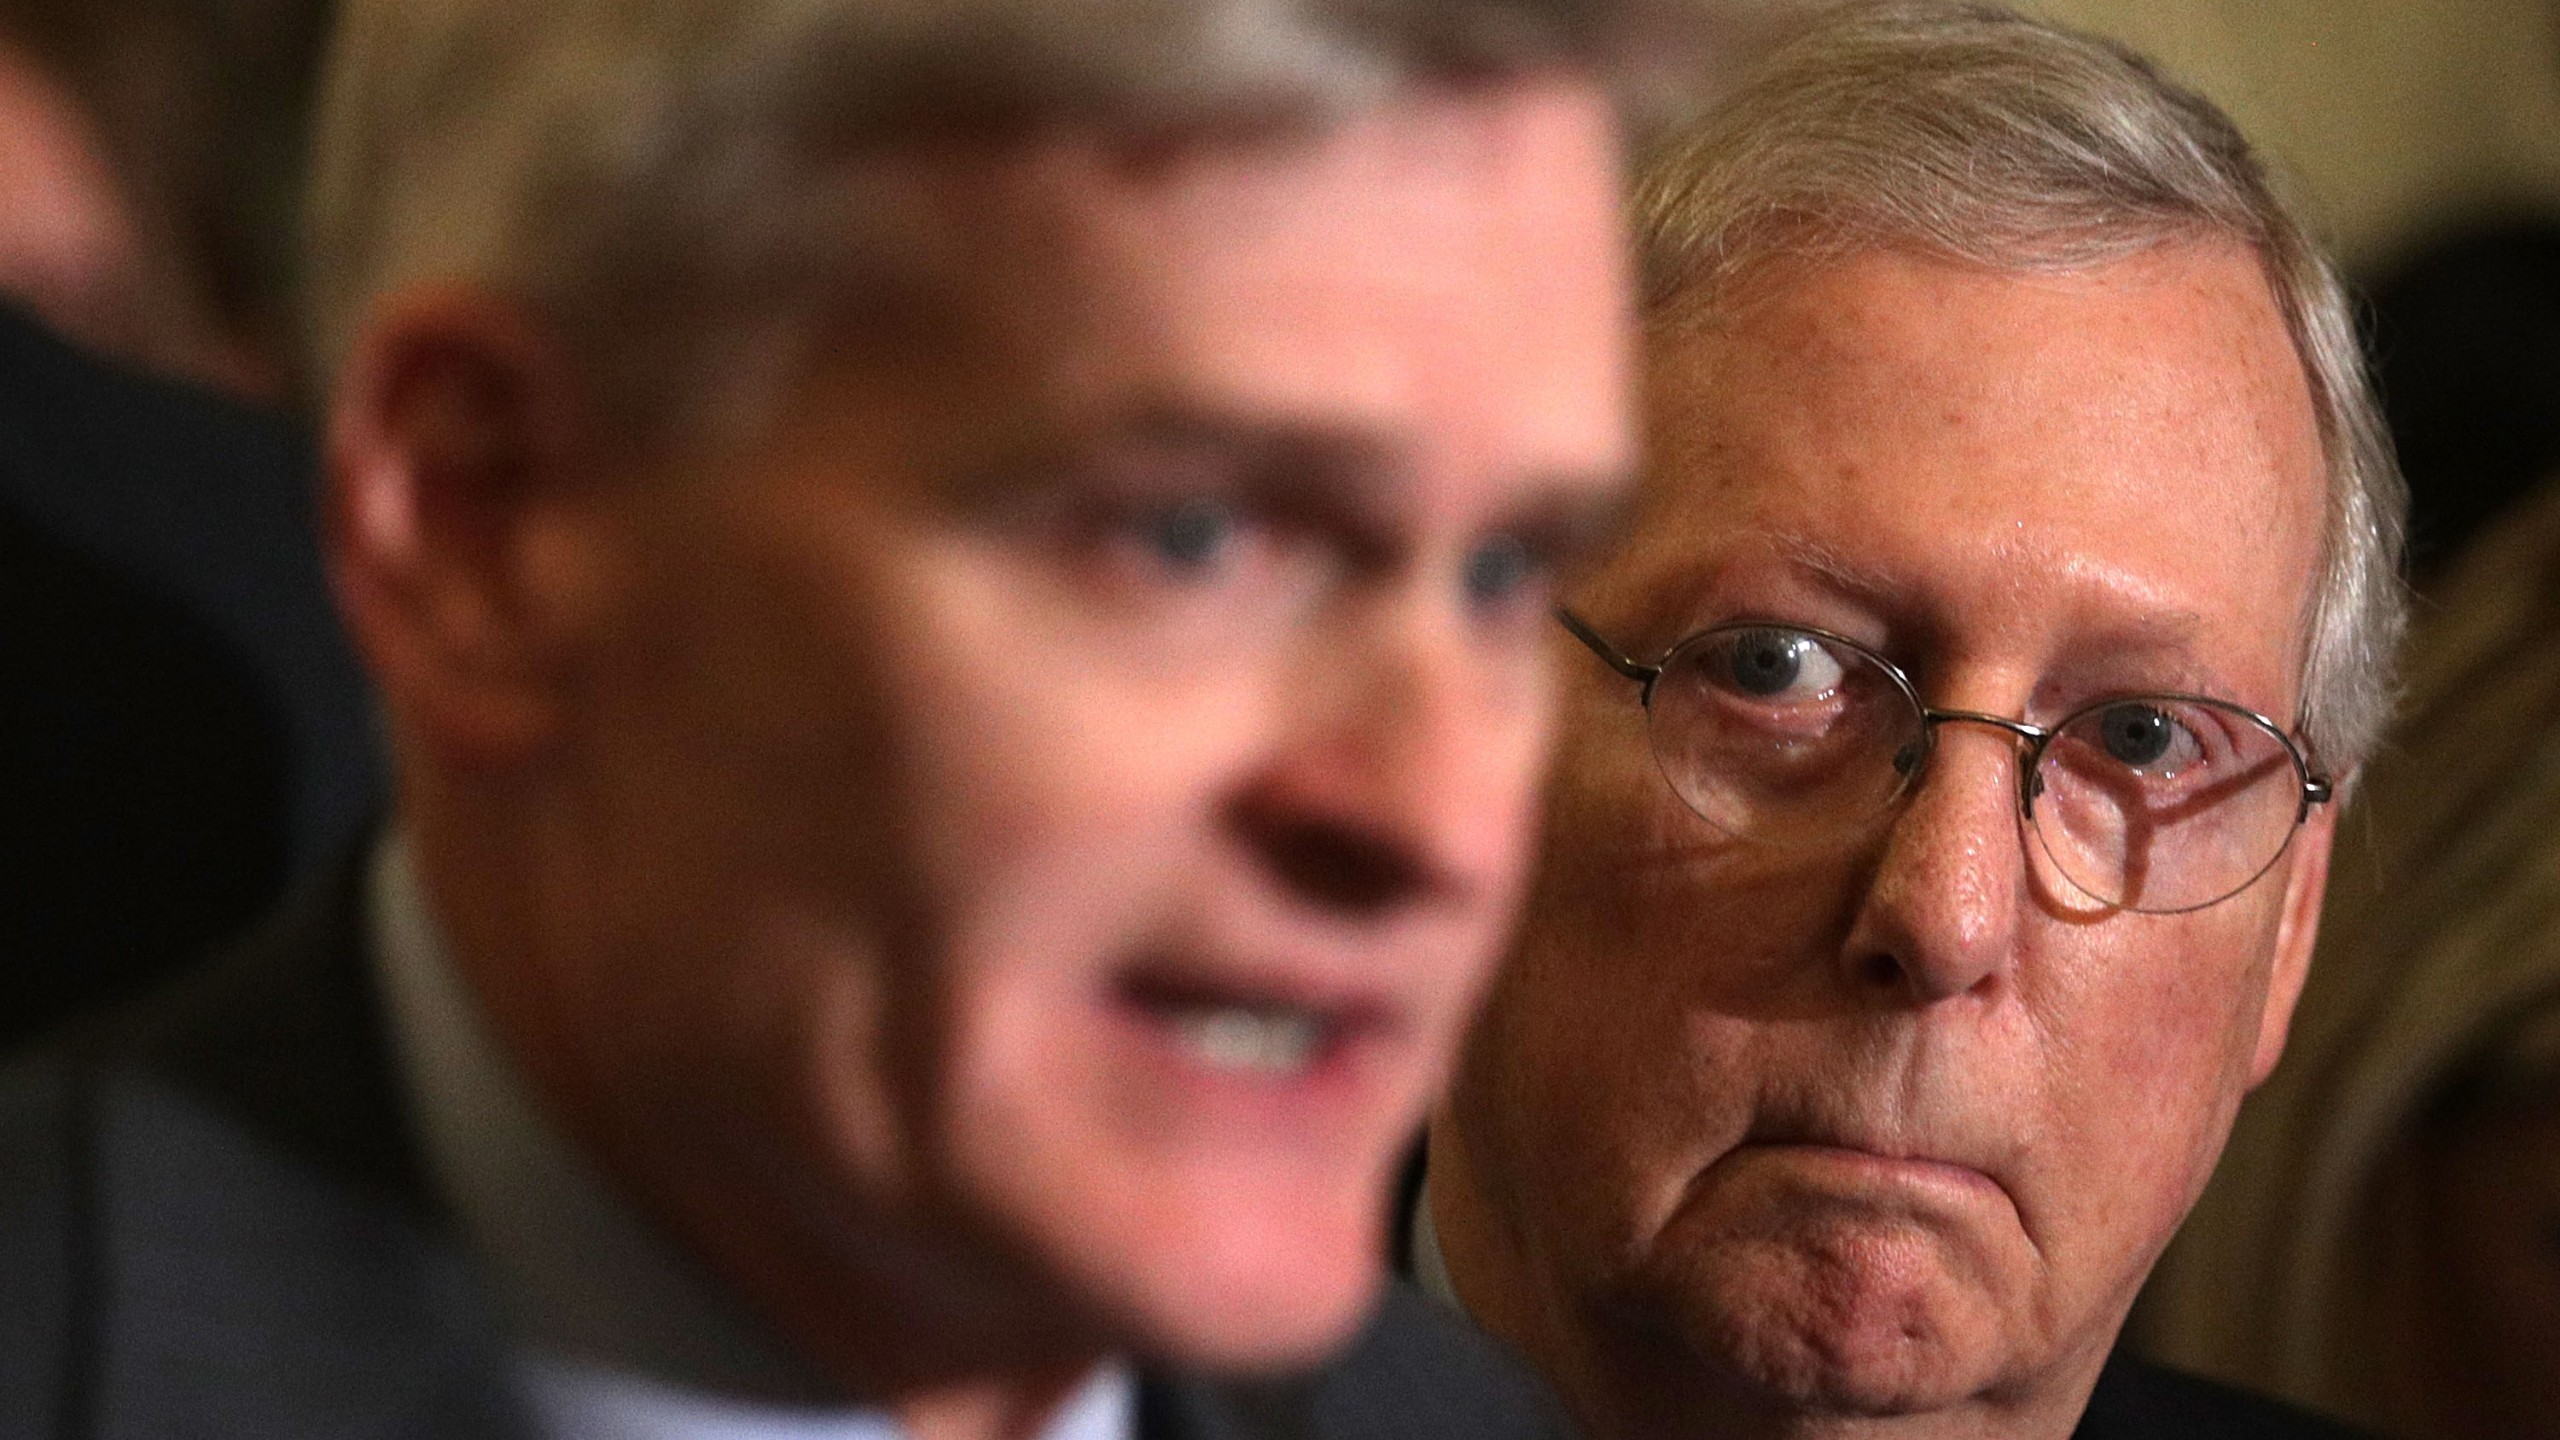 Sen. Bill Cassidy, left, speaks as Senate Majority Leader Sen. Mitch McConnell listens during a news briefing after the weekly Senate Republican policy luncheon at the Capitol Sept. 19, 2017. (Credit: Alex Wong/Getty Images)